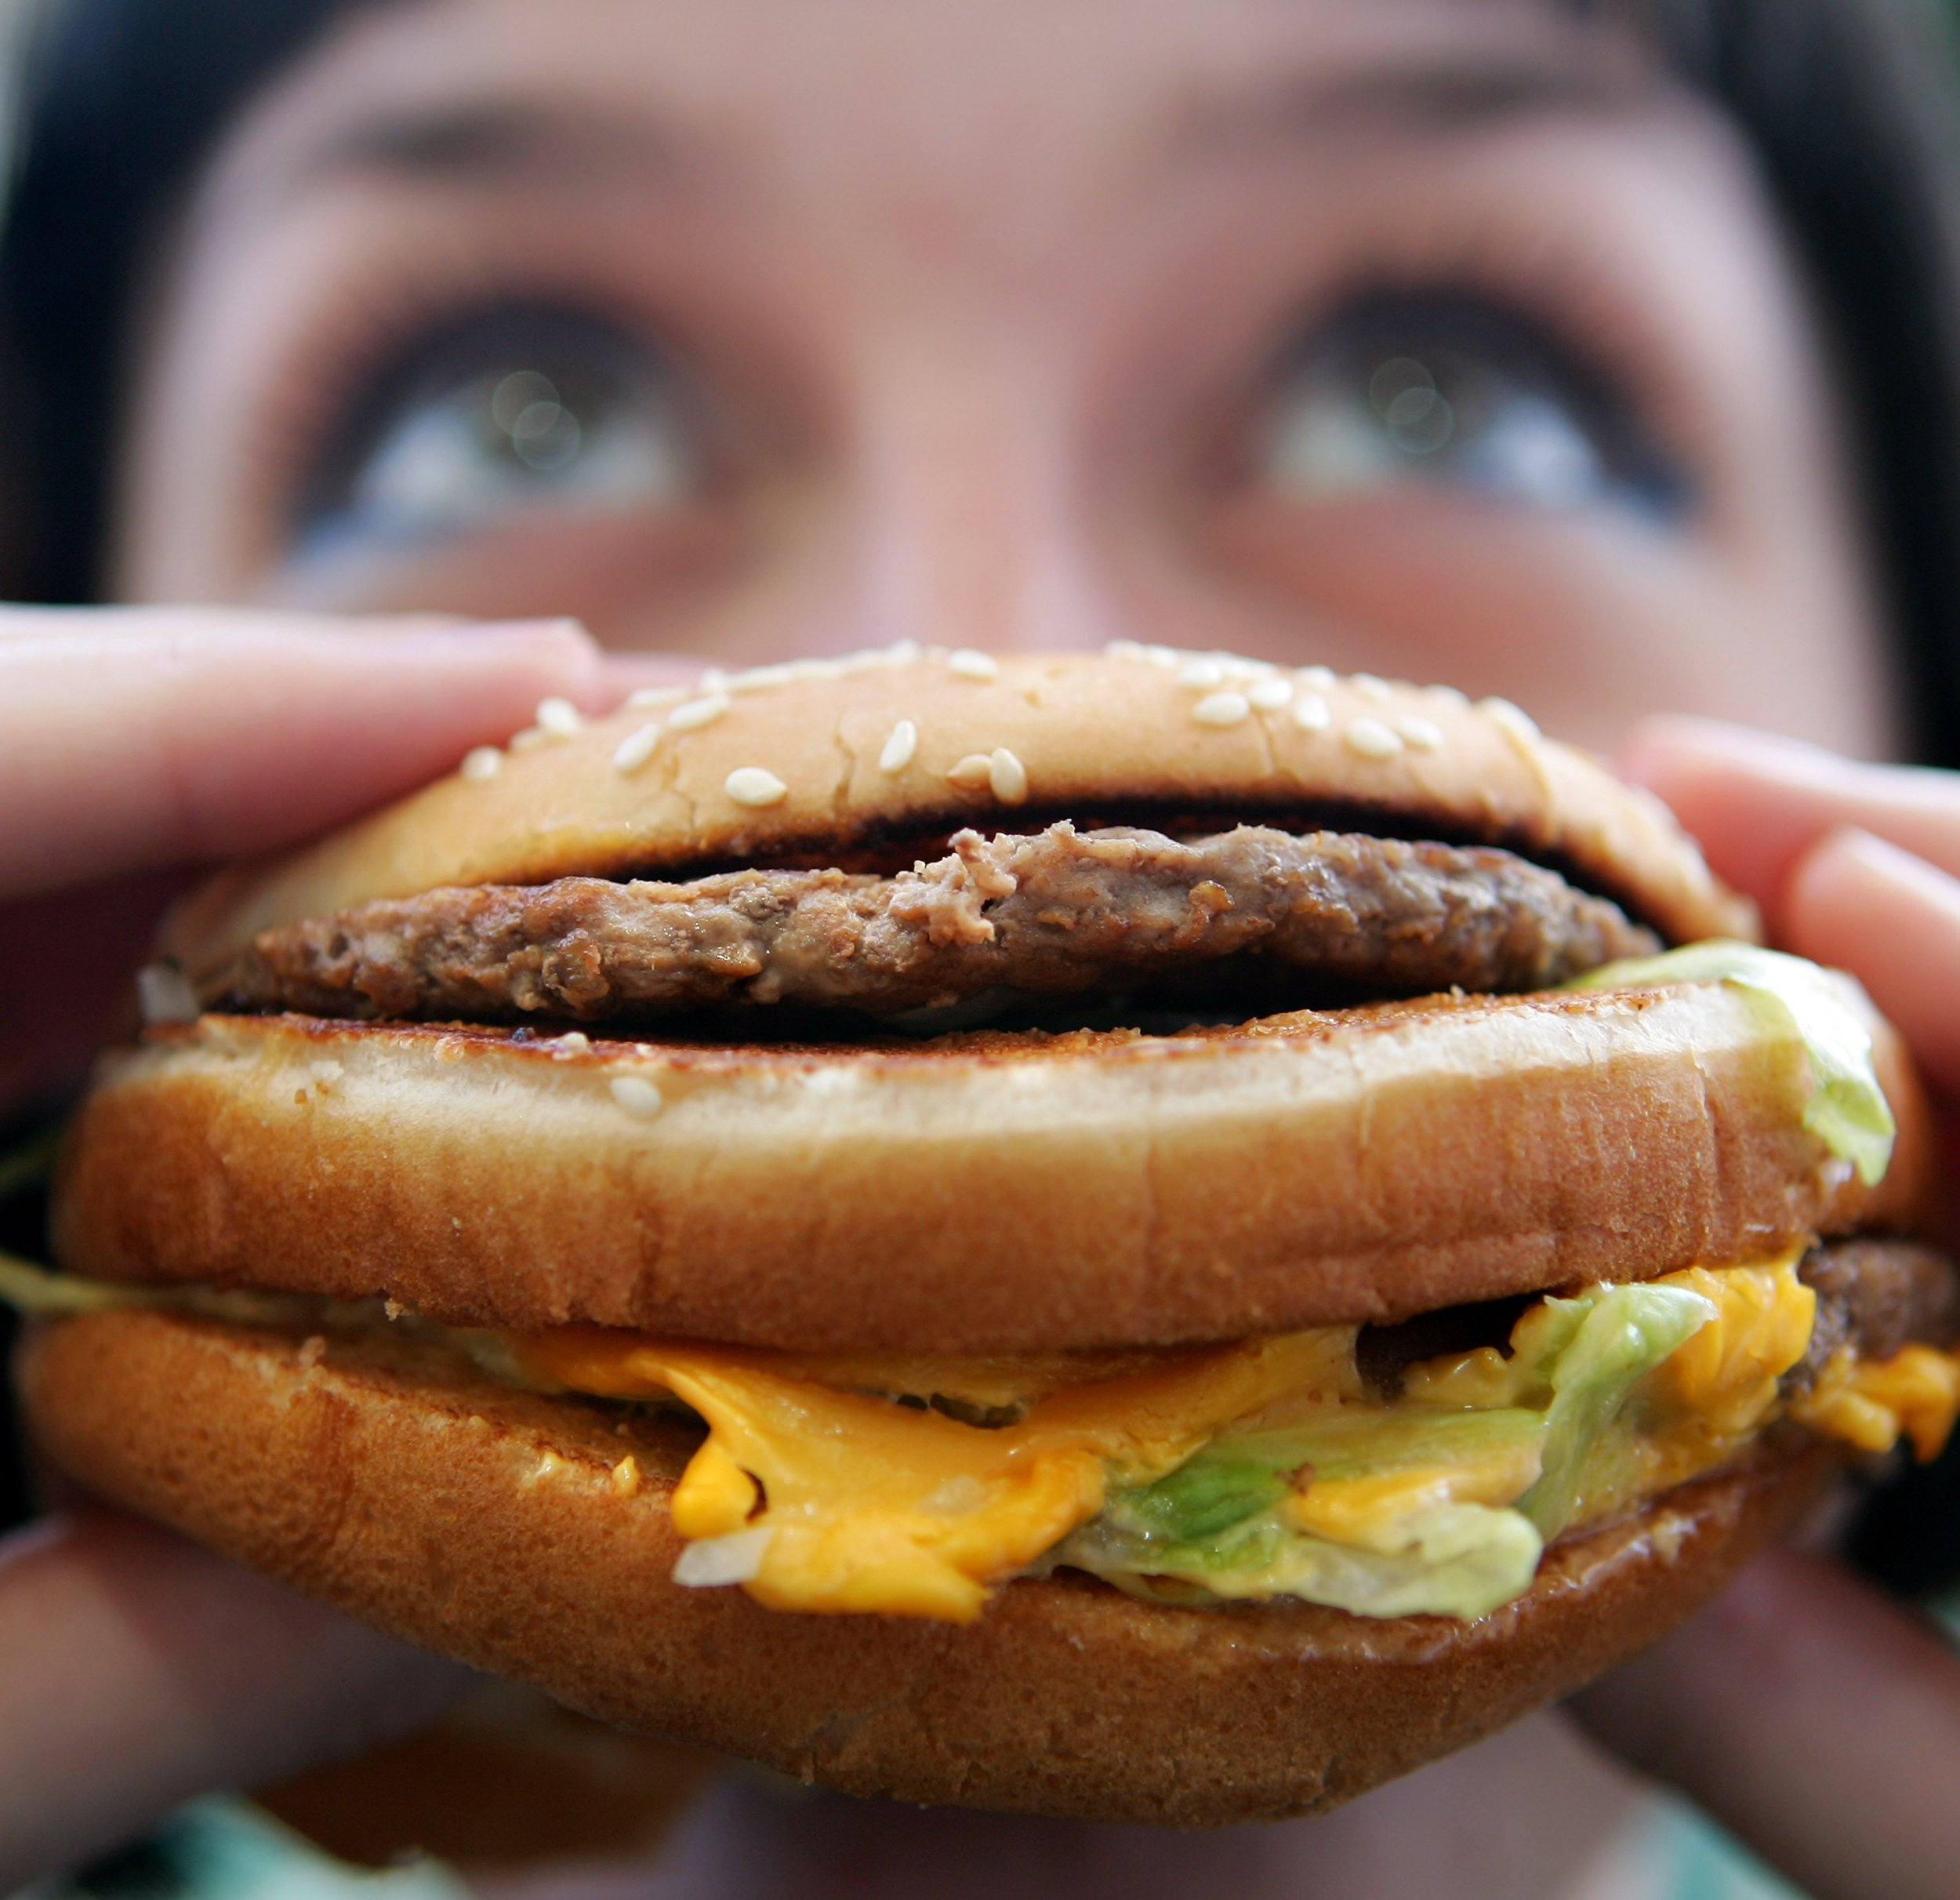 LONDON - JULY 12: In this photo illustration a lady eats a beefburger on July 12, 2007 in London, England. Government advisors are considering plans for a fat tax on foods high in fat to try to help tackle the fight against obesity. (Photo by Cate Gillon/Getty Images)